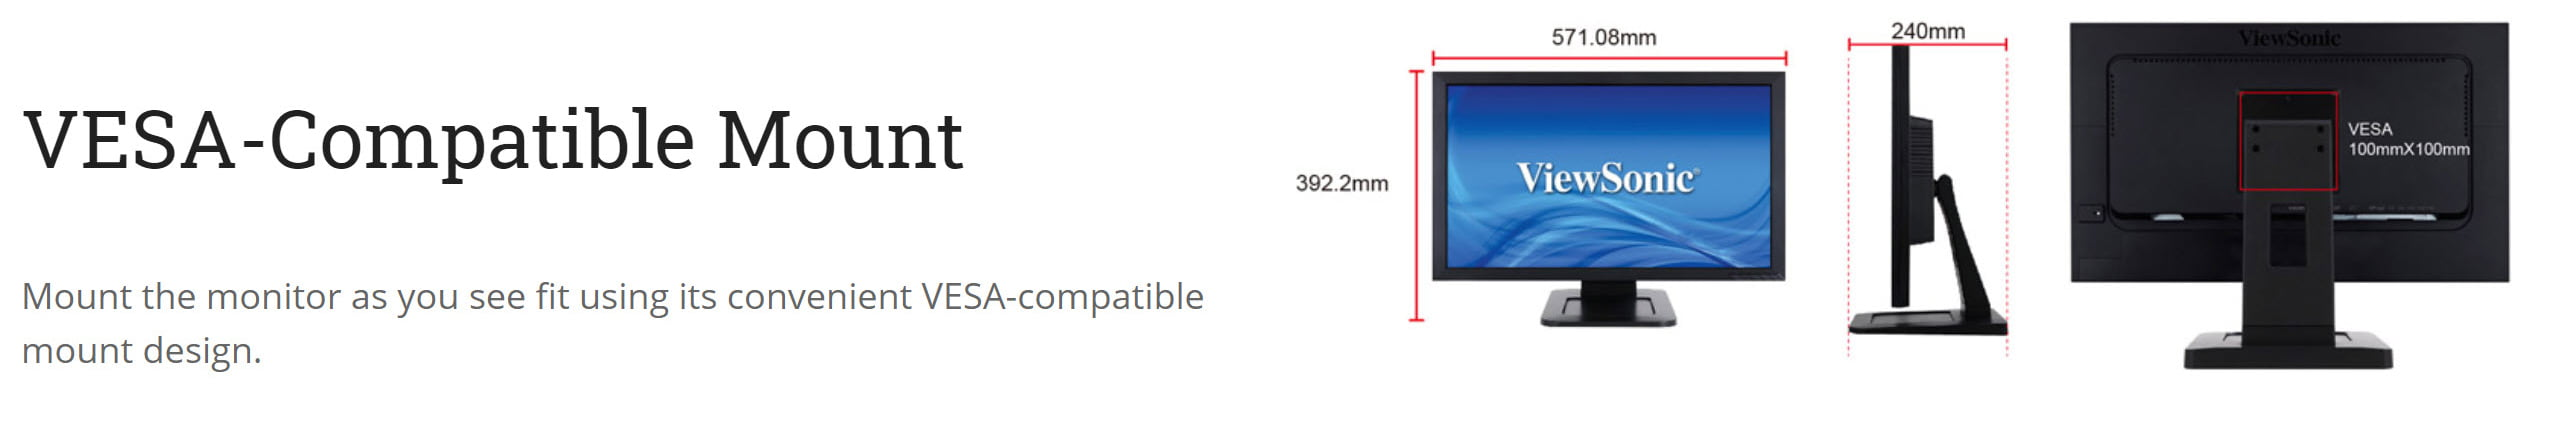 ViewSonic TD2421 24″ 2-point Touch Screen Monitor – Open Box